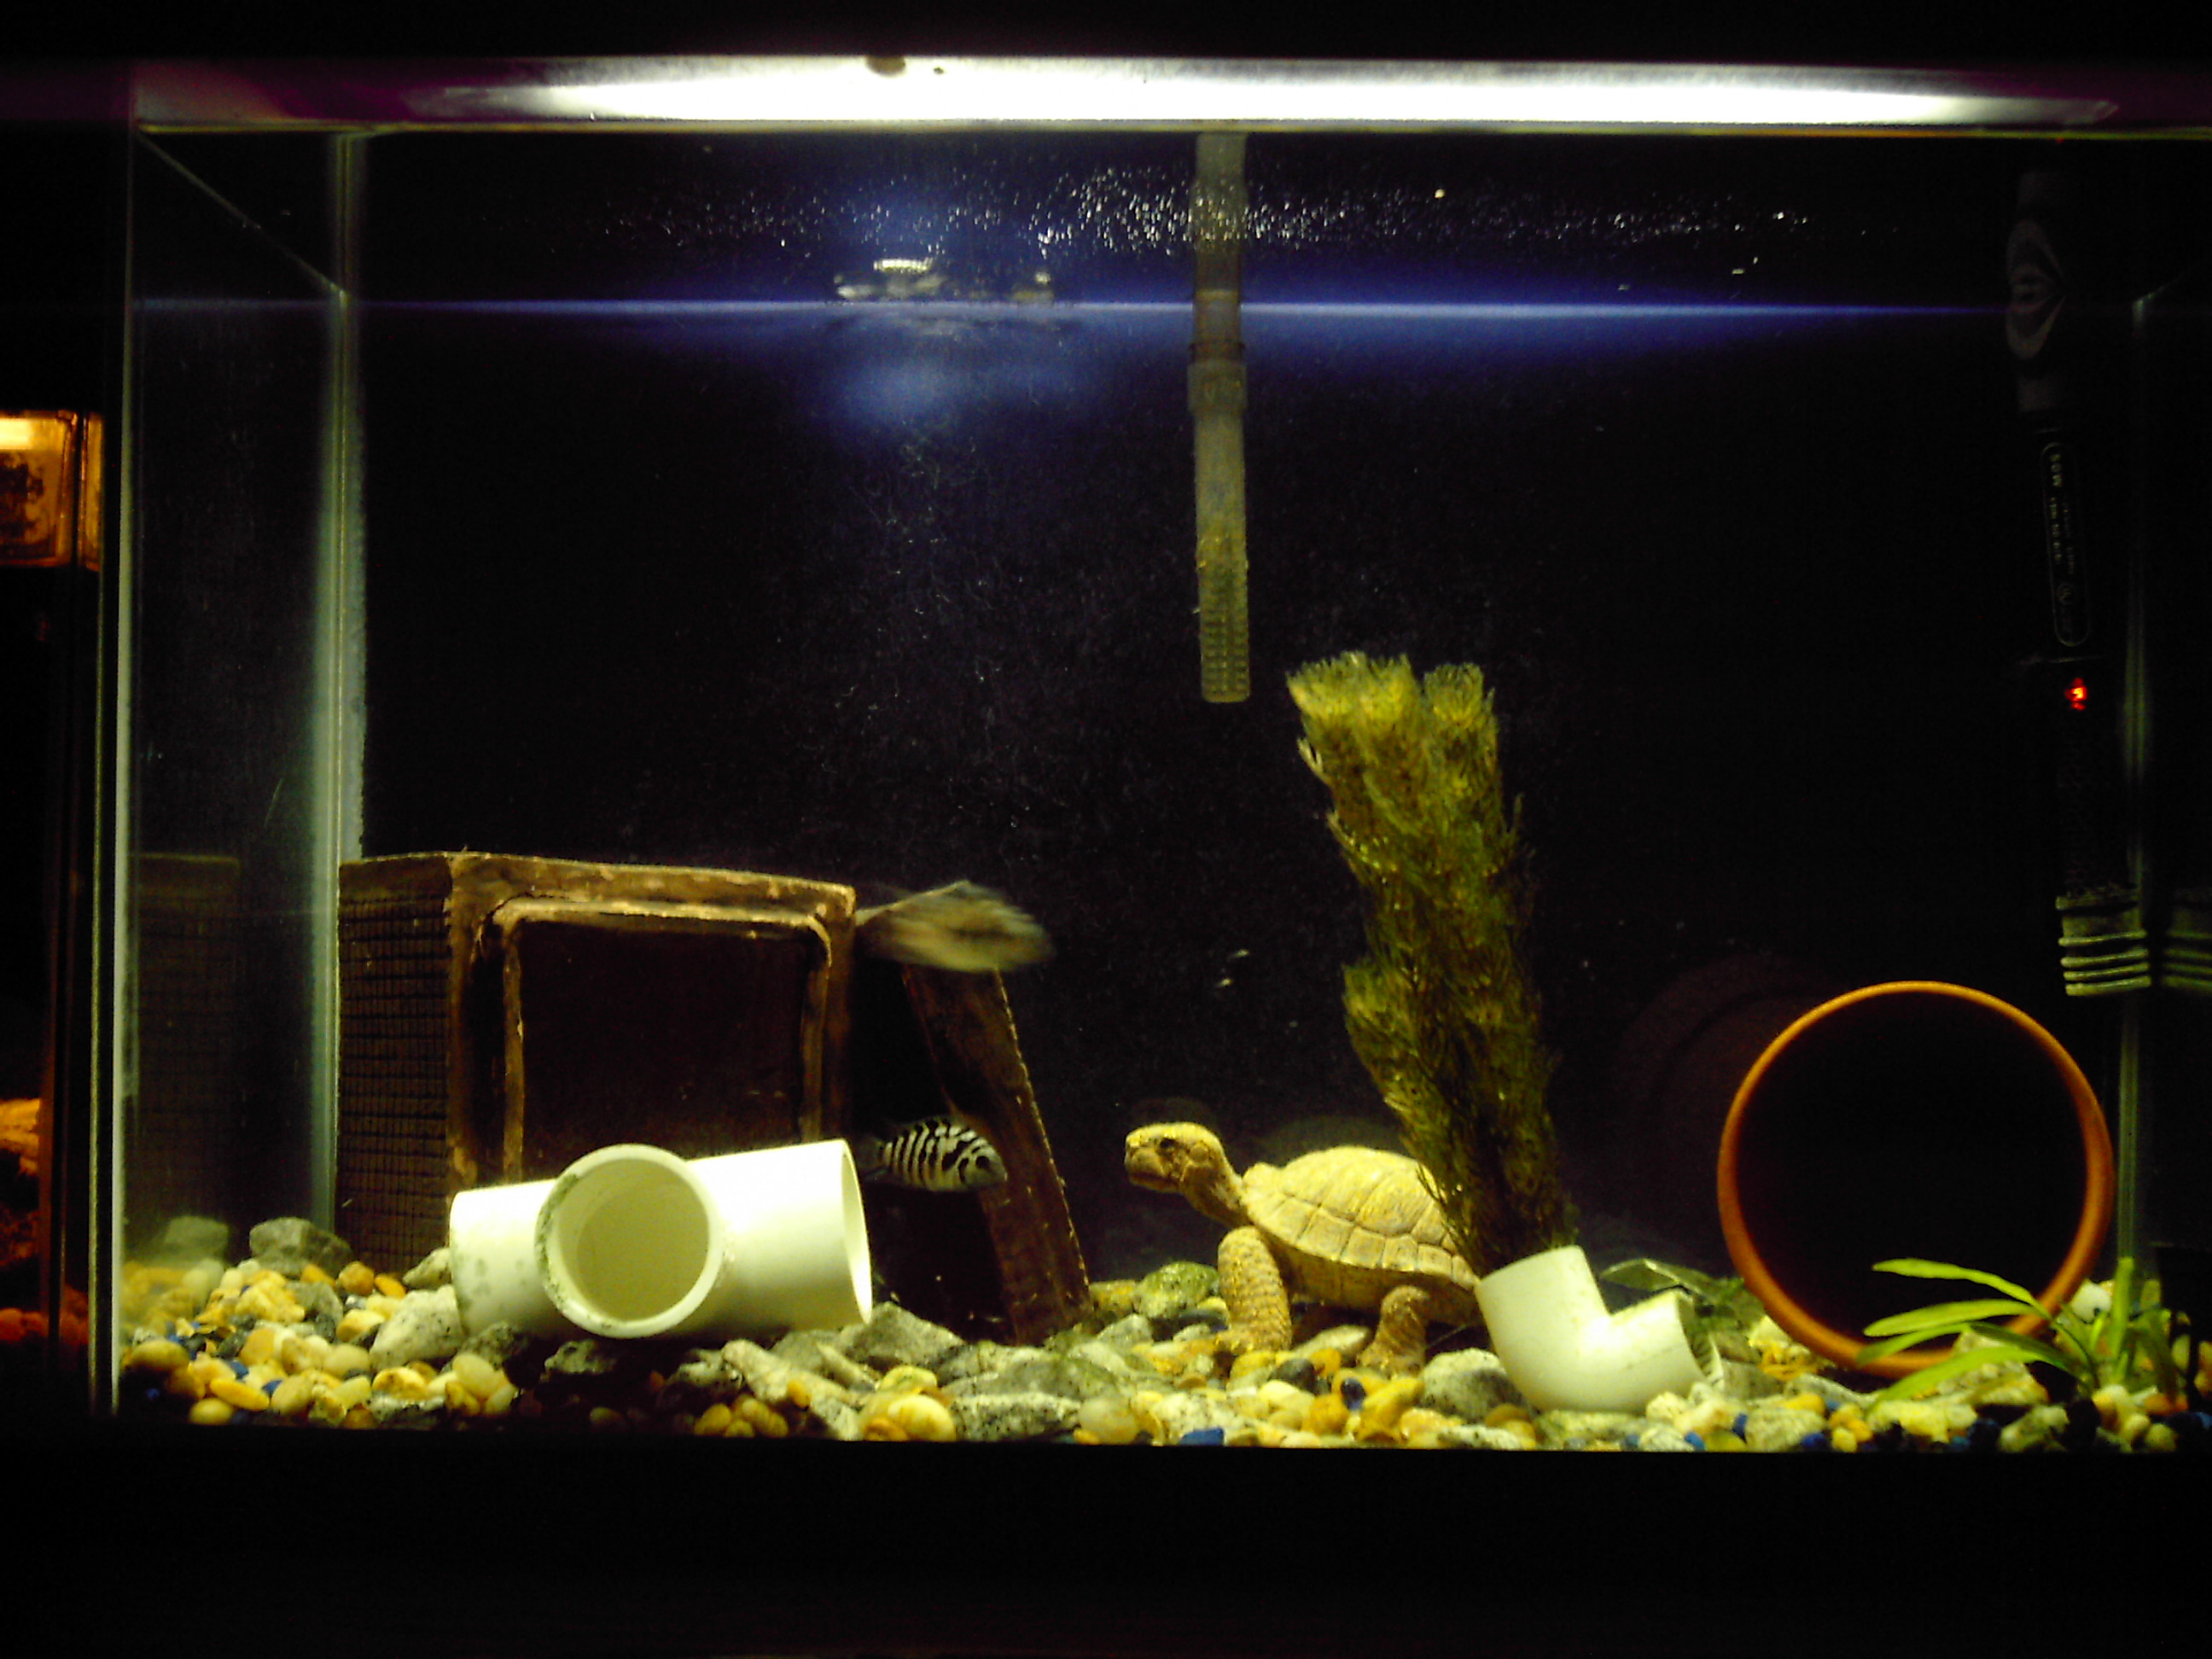 20 gallon tank in cm tank examples 20 for 20 gallon fish tank dimensions